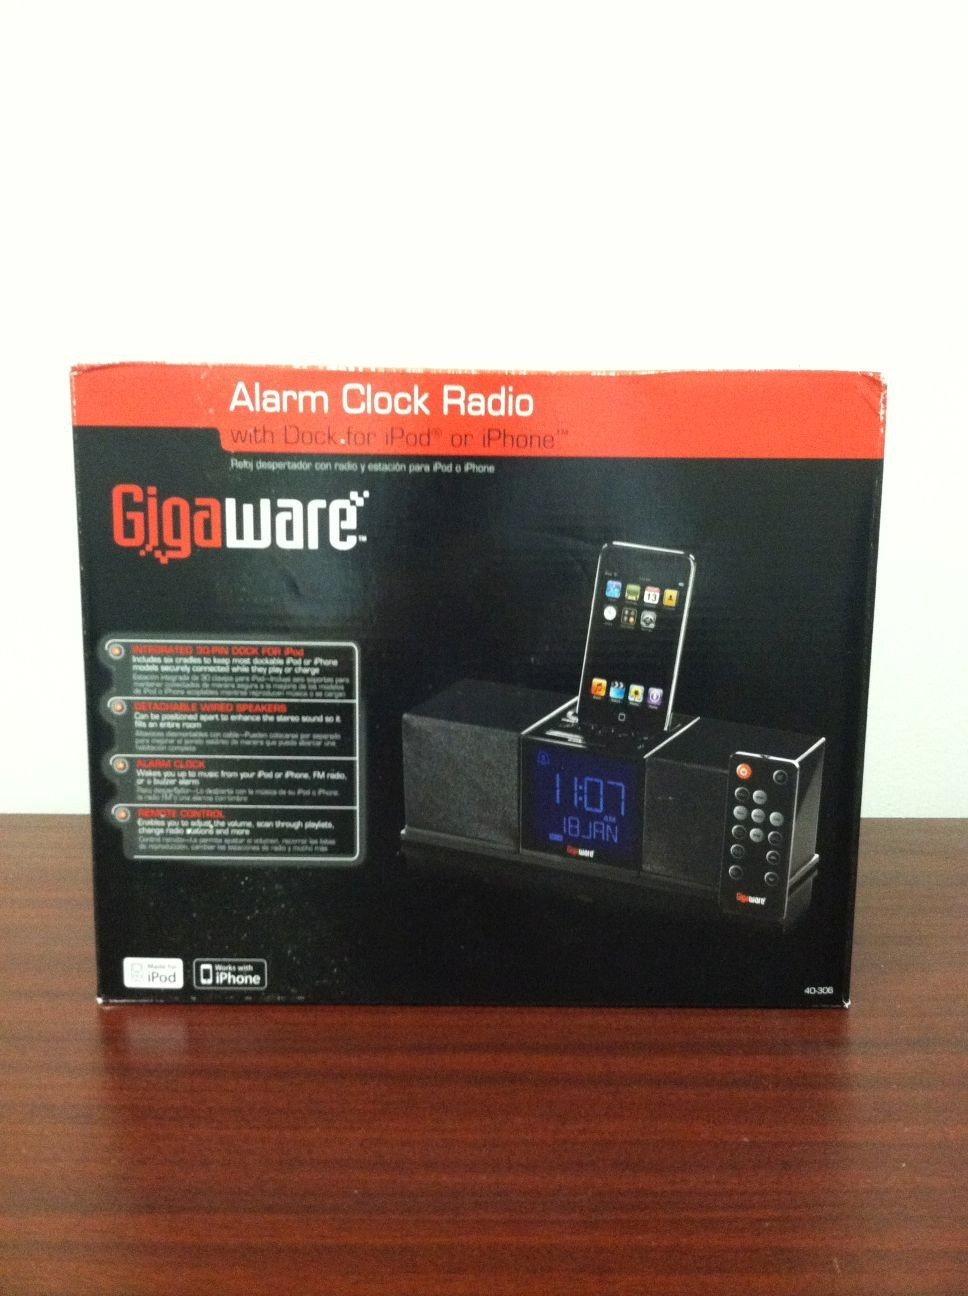 new gigaware alarm clock radio dock for apple ipod iphone 40 306 di. Black Bedroom Furniture Sets. Home Design Ideas